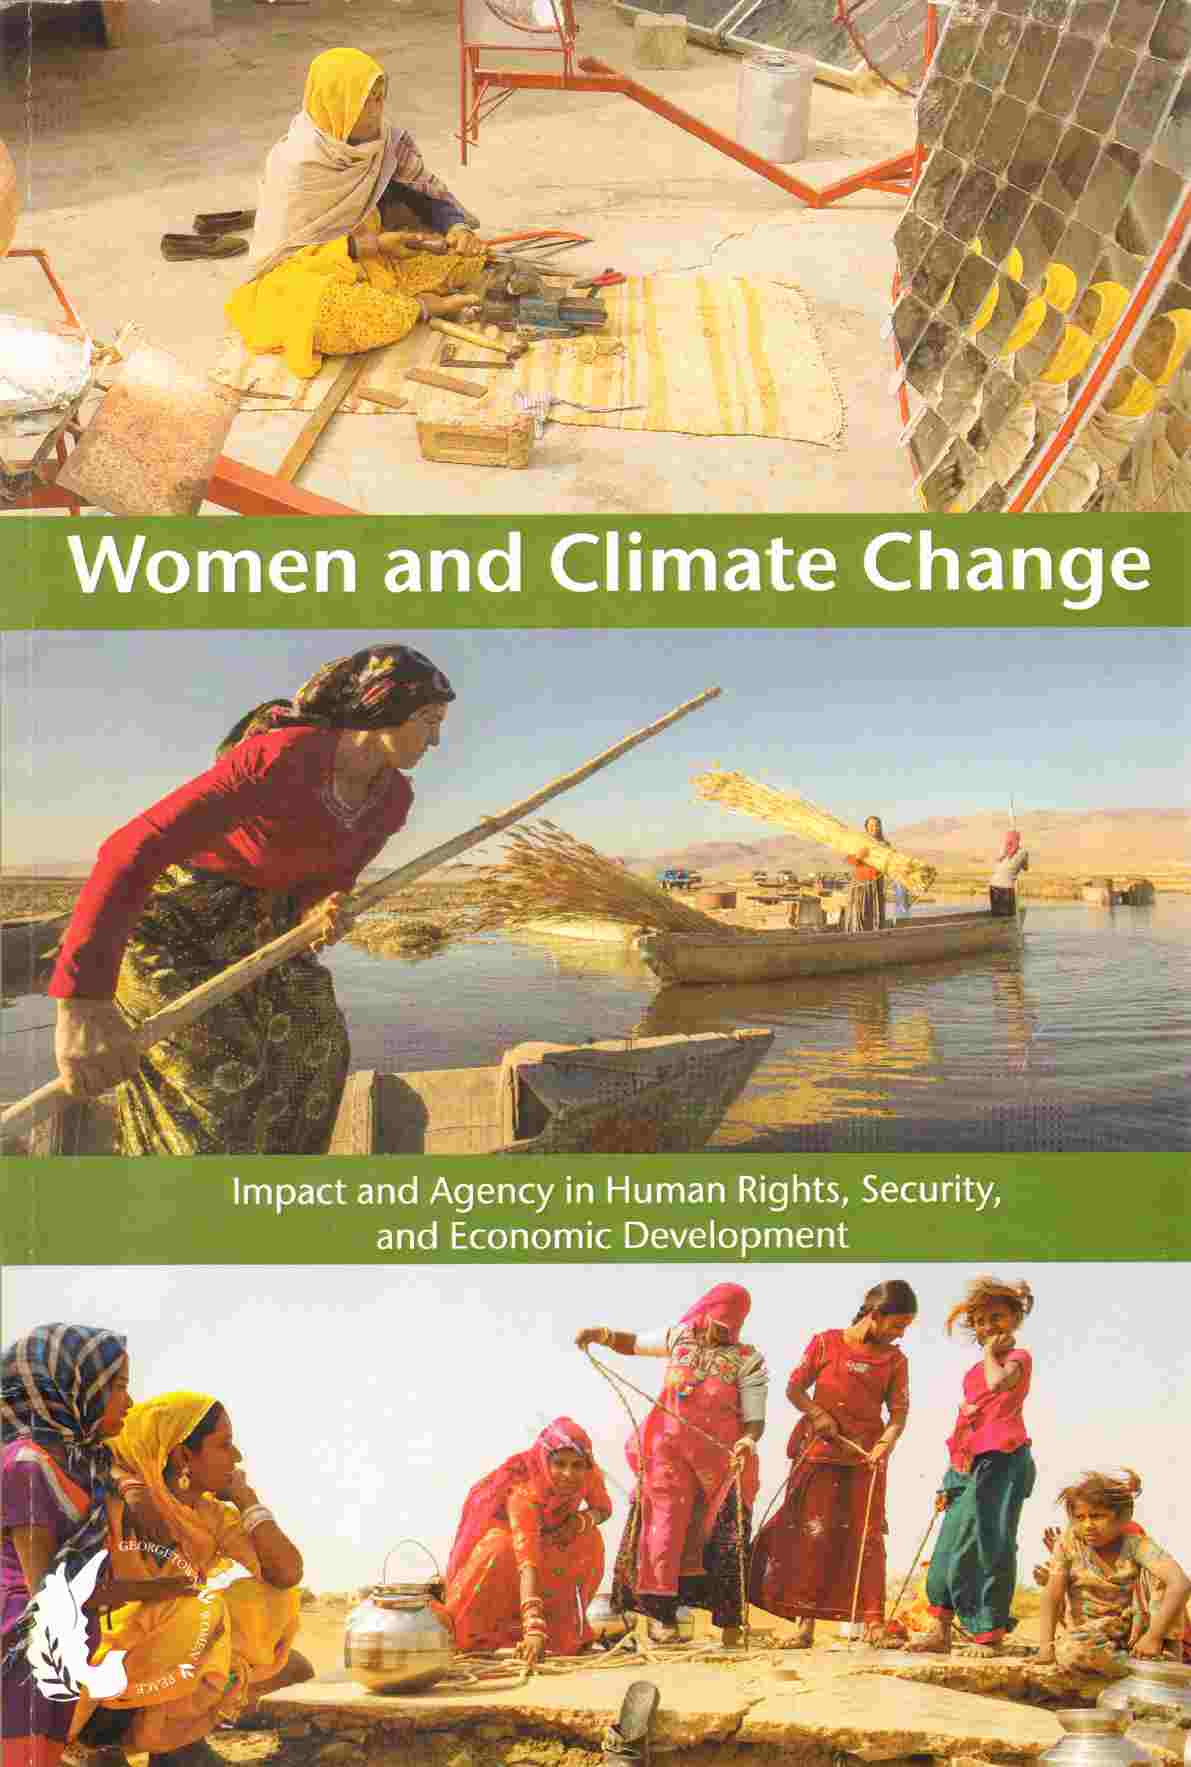 WOMEN AND CLIMATE CHANGE:  Impact and Agency in Human Rights, Security, and Economic Development, Alam, Mayesha; Rukmani Bhatia and Briana Mawby